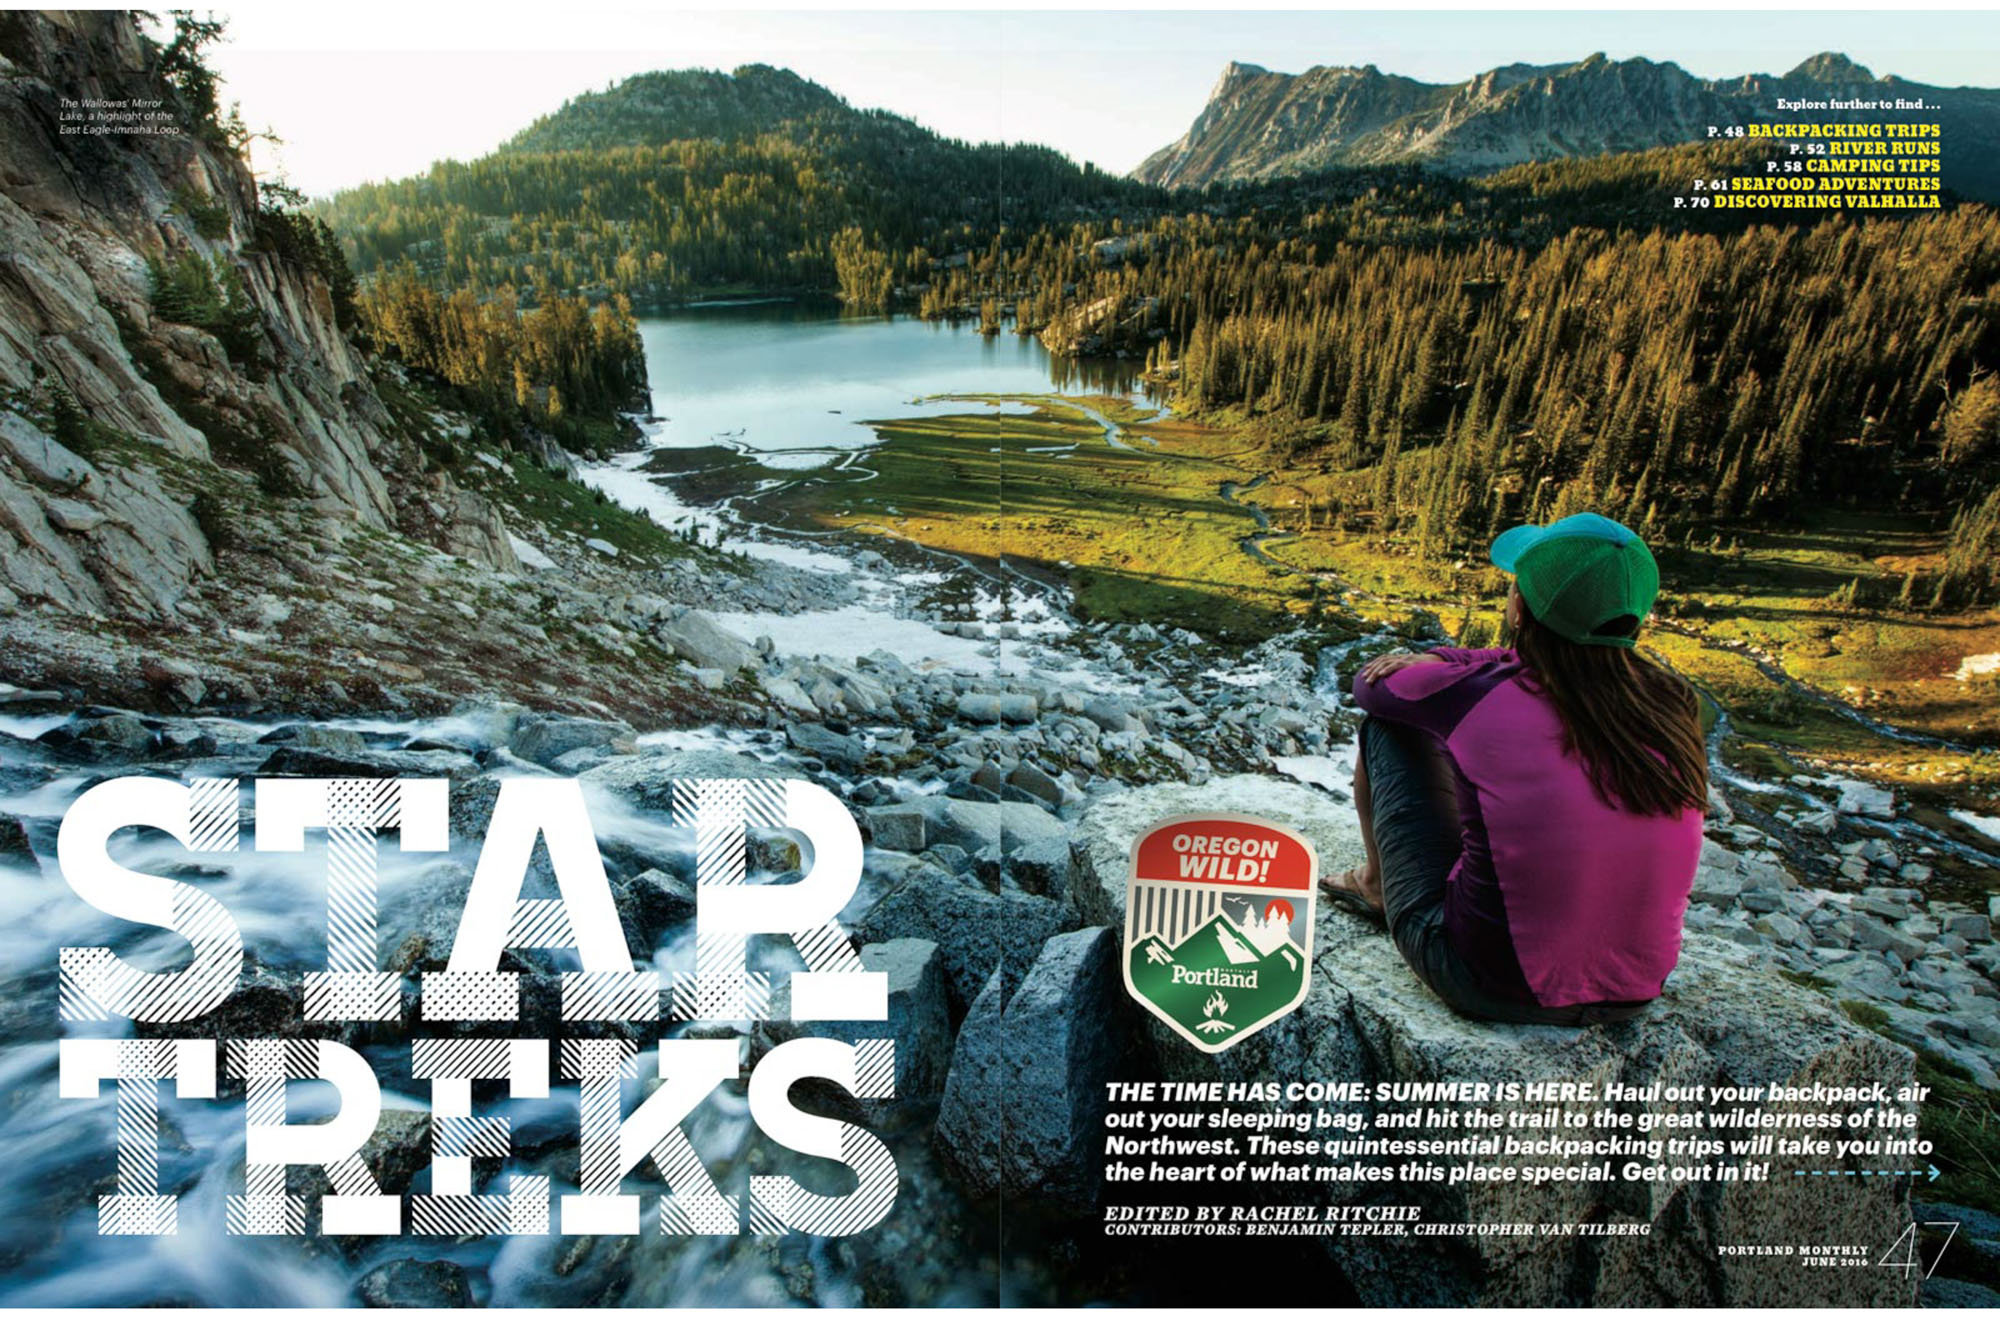 portland-magazine-published-backpacking-female-womens-sports.JPG